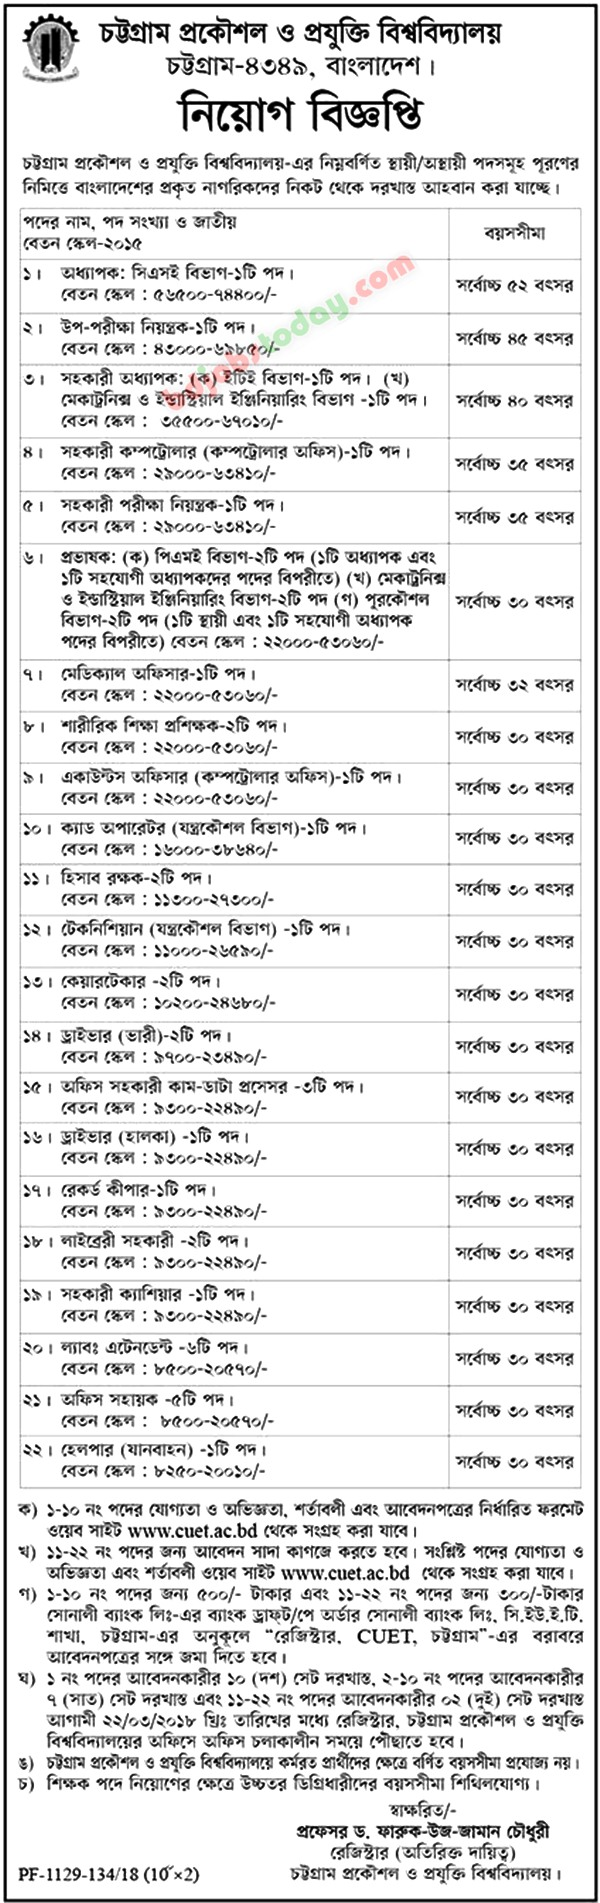 Chittagong University of Engineering and Technology -CUET jobs